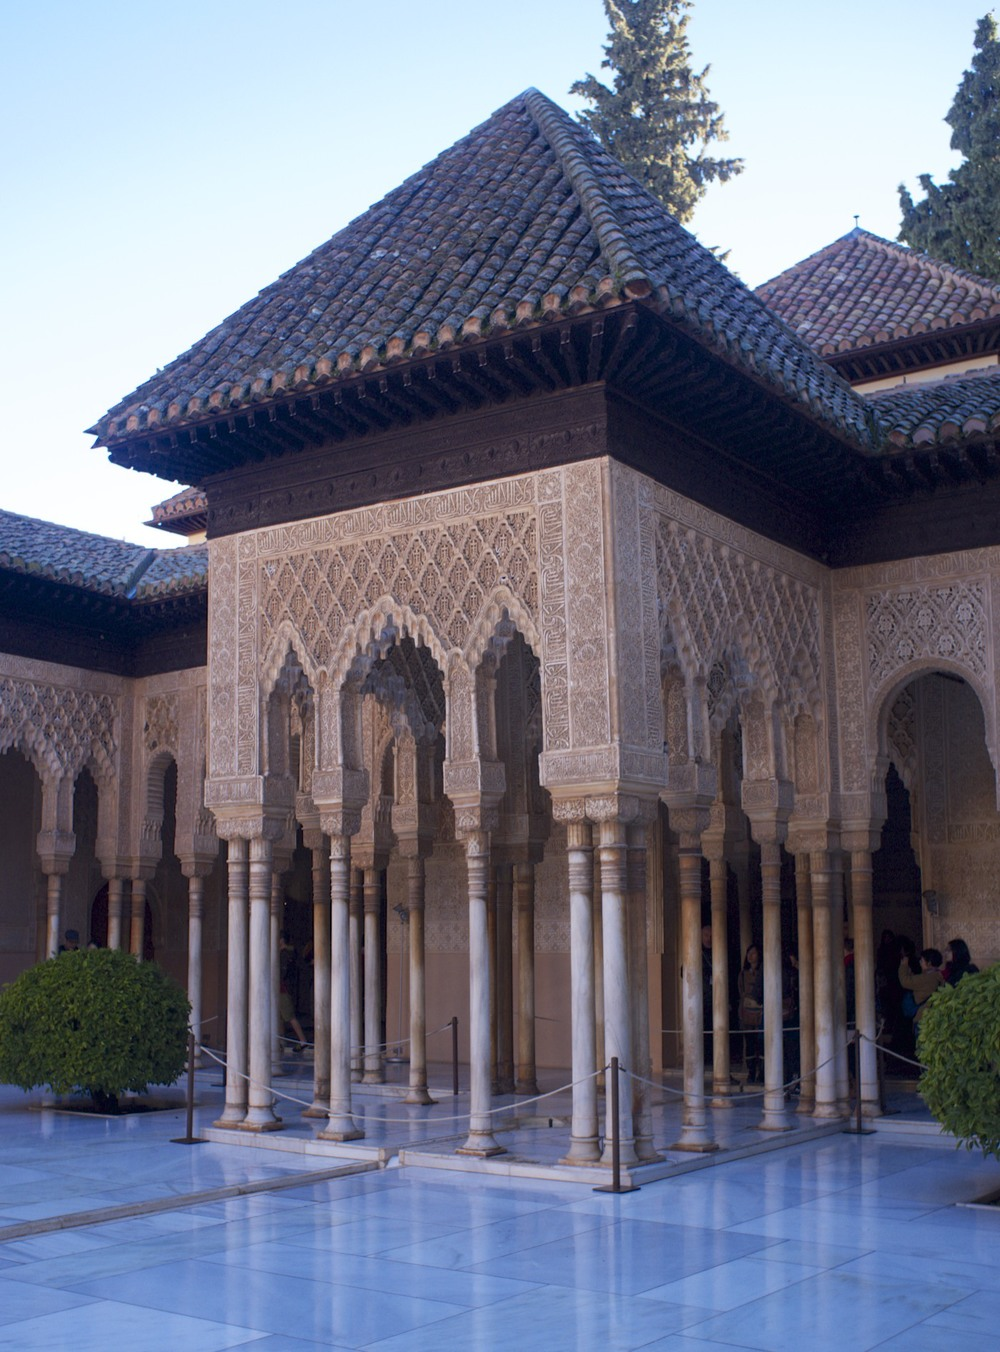 Moorish architecture and ornaments in the Alhambra.